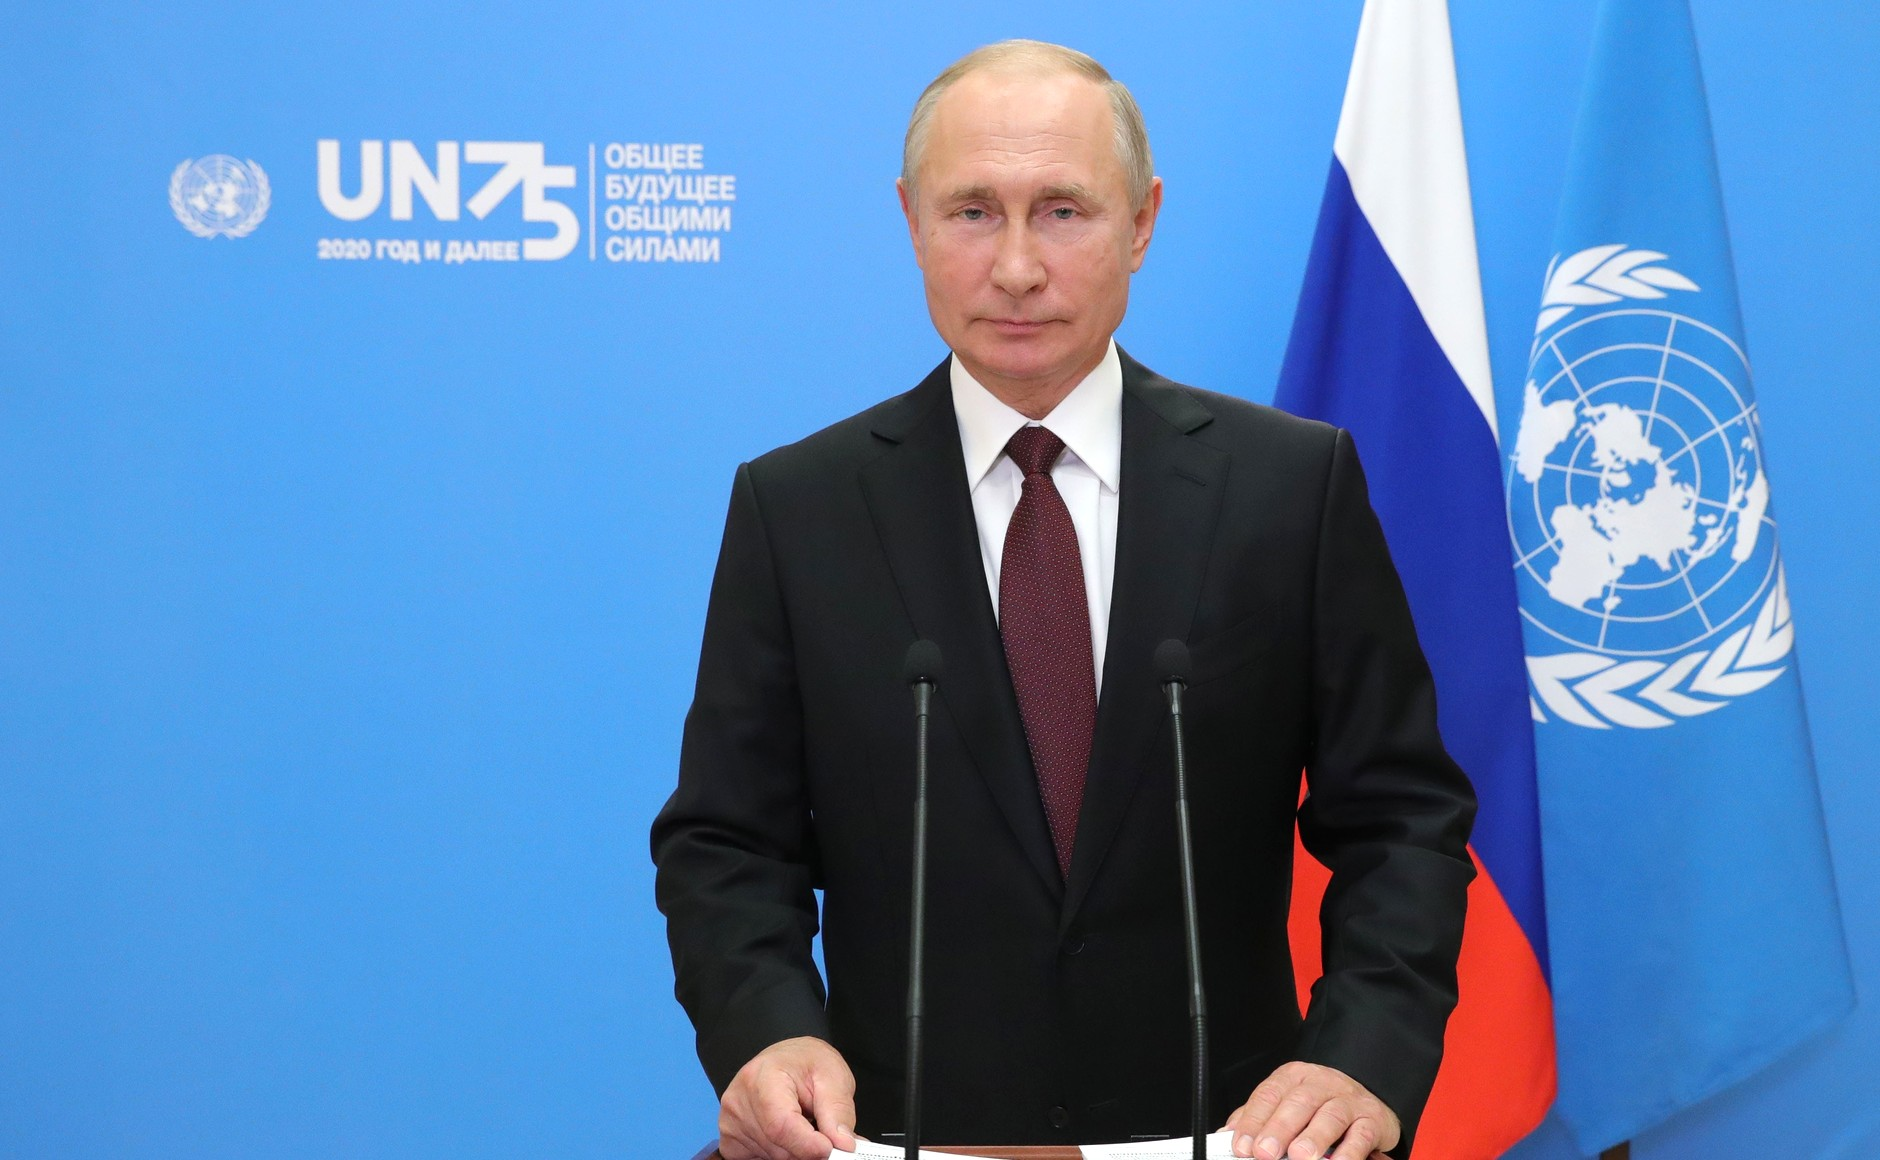 Vladimir Putin delivered a pre-recorded video address to the 75th anniversary session of the United Nations General Assembly.